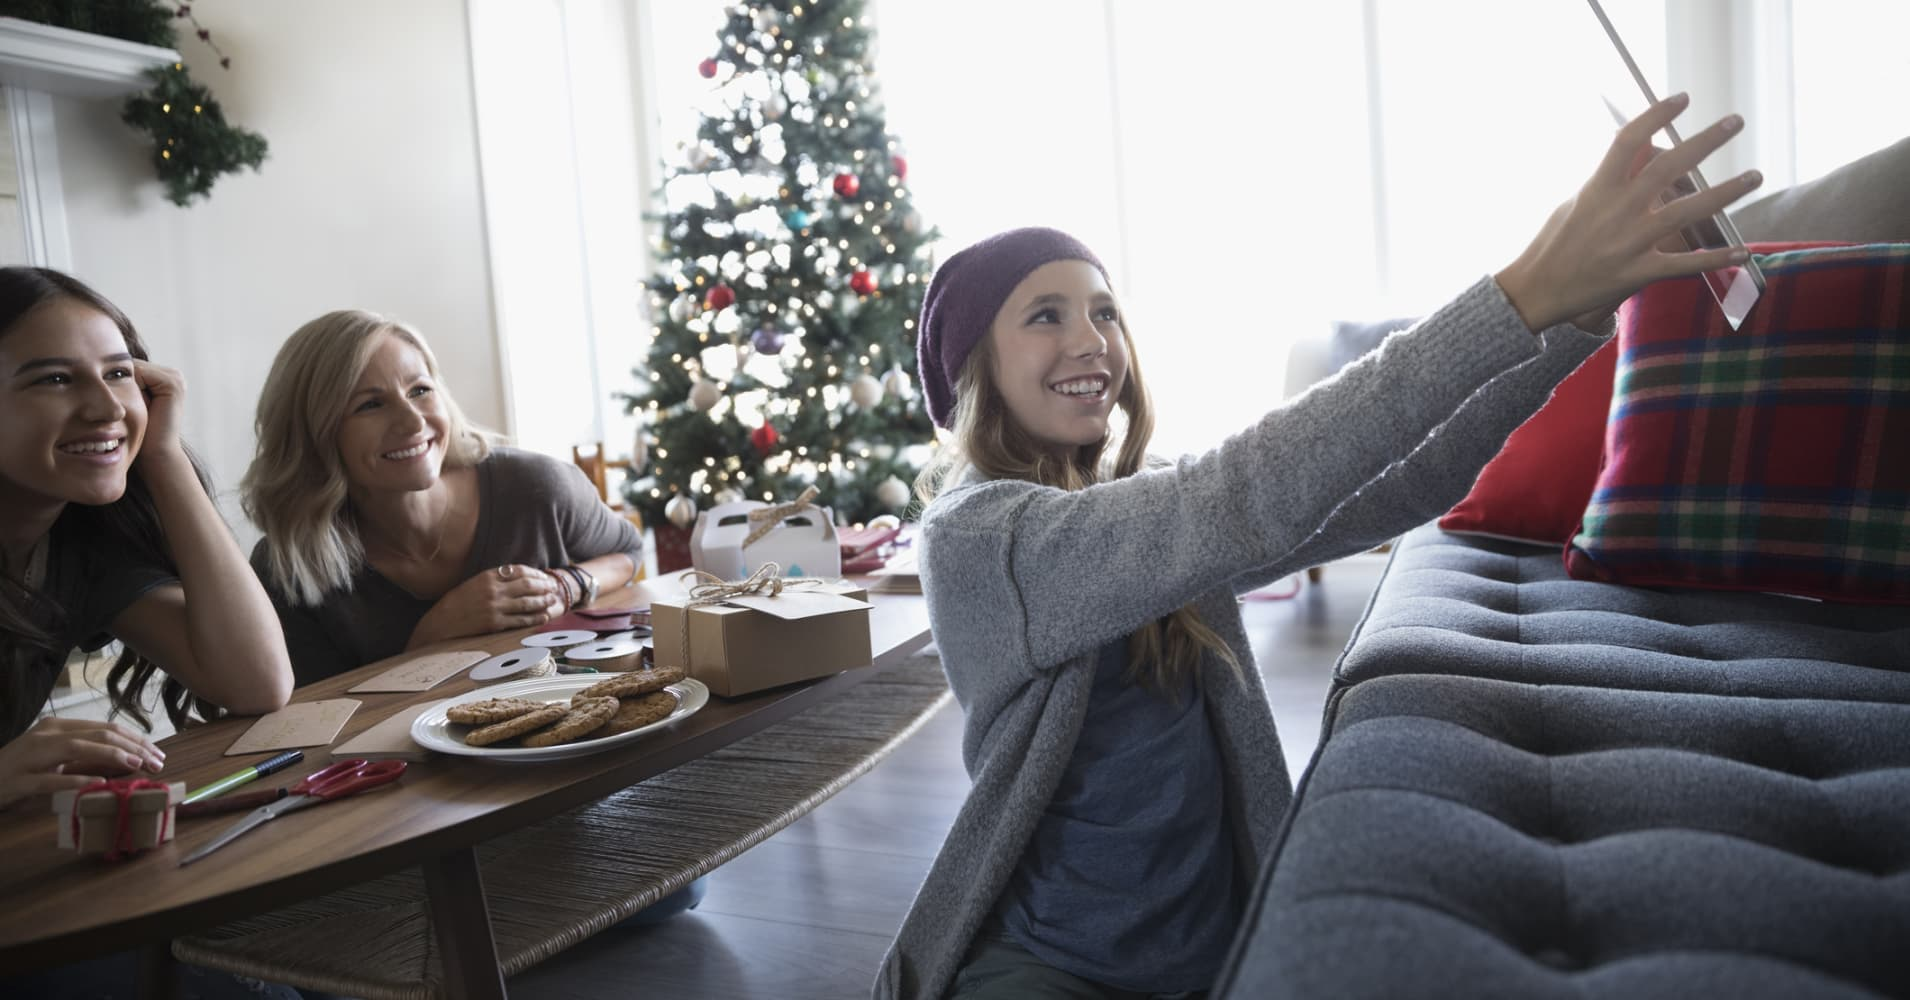 Smiling teenage girl with digital tablet taking selfie with mother and sister in Christmas living room